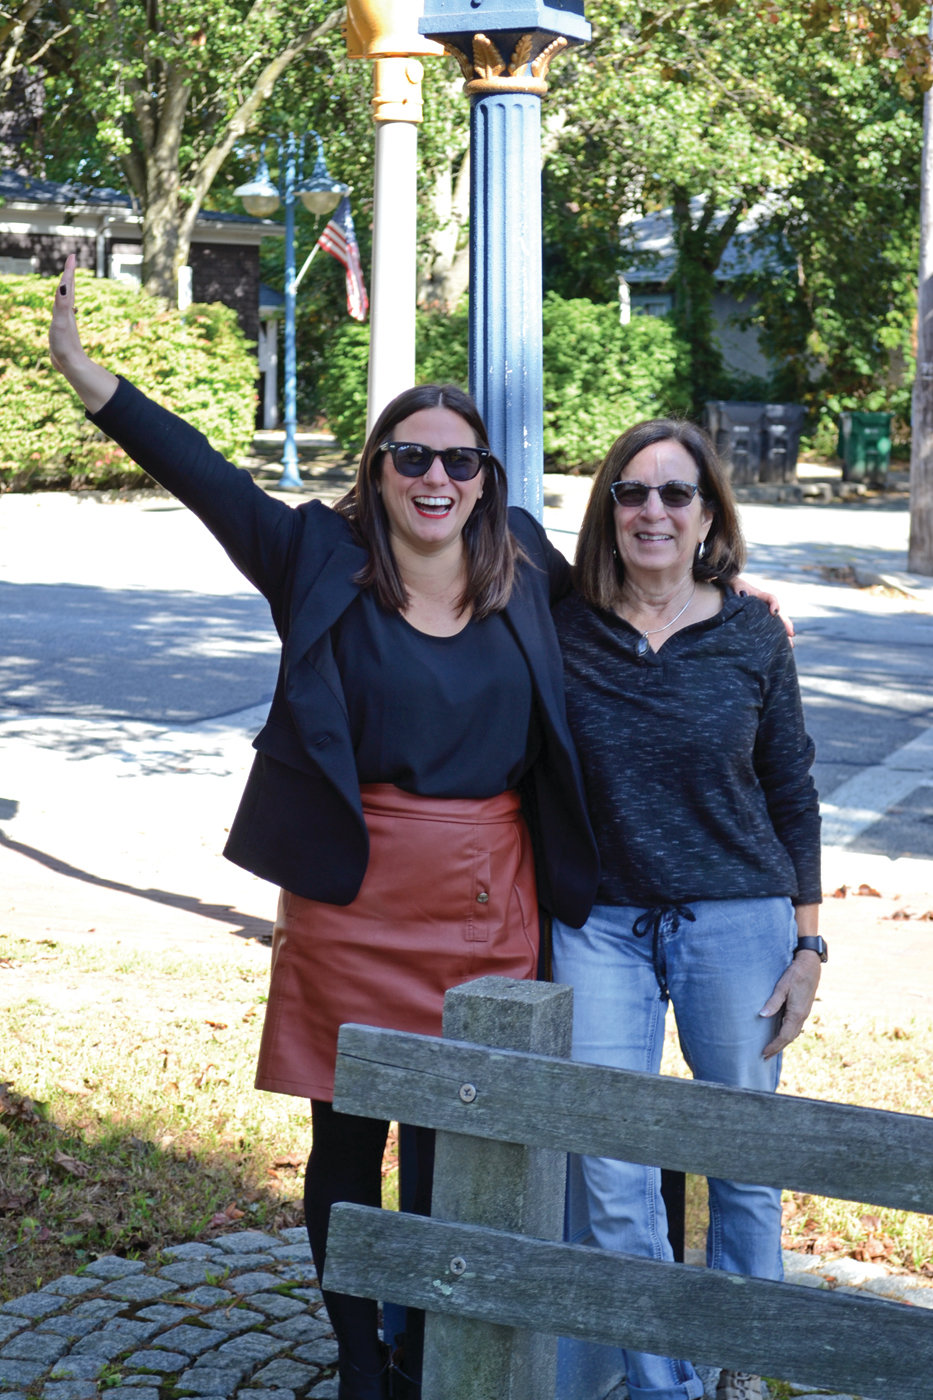 COME TO CONIMICUT: Meg Mut, a realtor with Century 21, and Virginia Barham, president of the Conimicut Village Association, are putting on a small business open house, with the hopes of bringing in new business owners to the historic Warwick village.